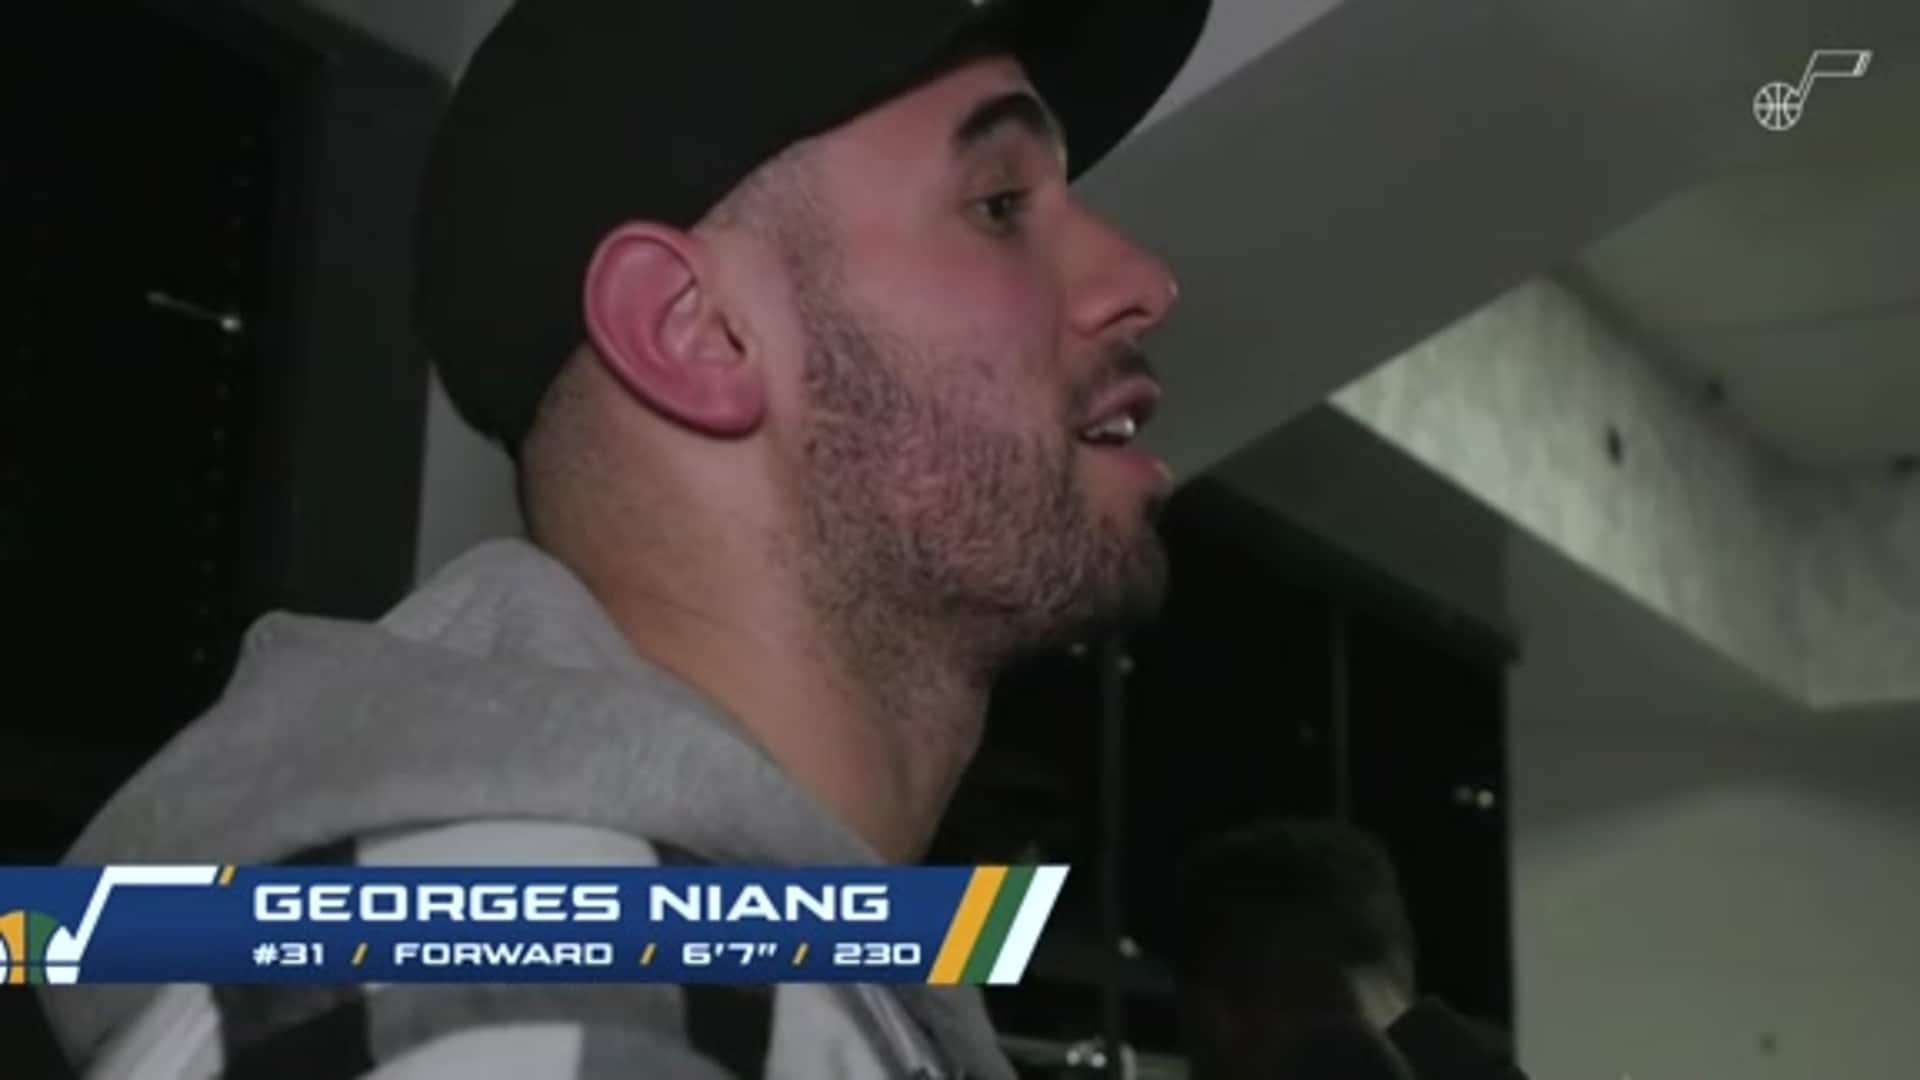 Georges Niang postgame—